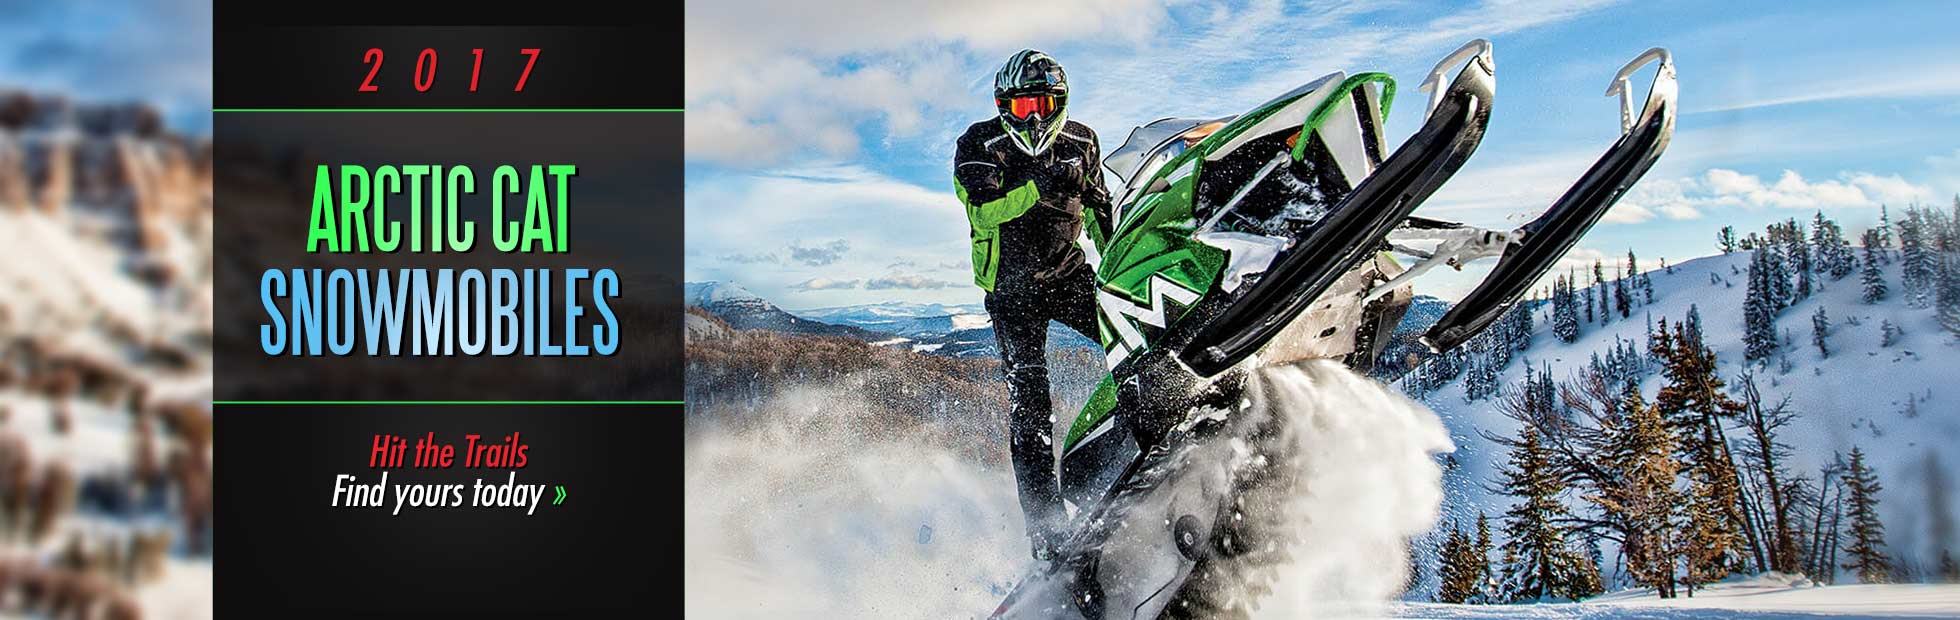 2017 Arctic Cat Snowmobiles: Click here to view the models.